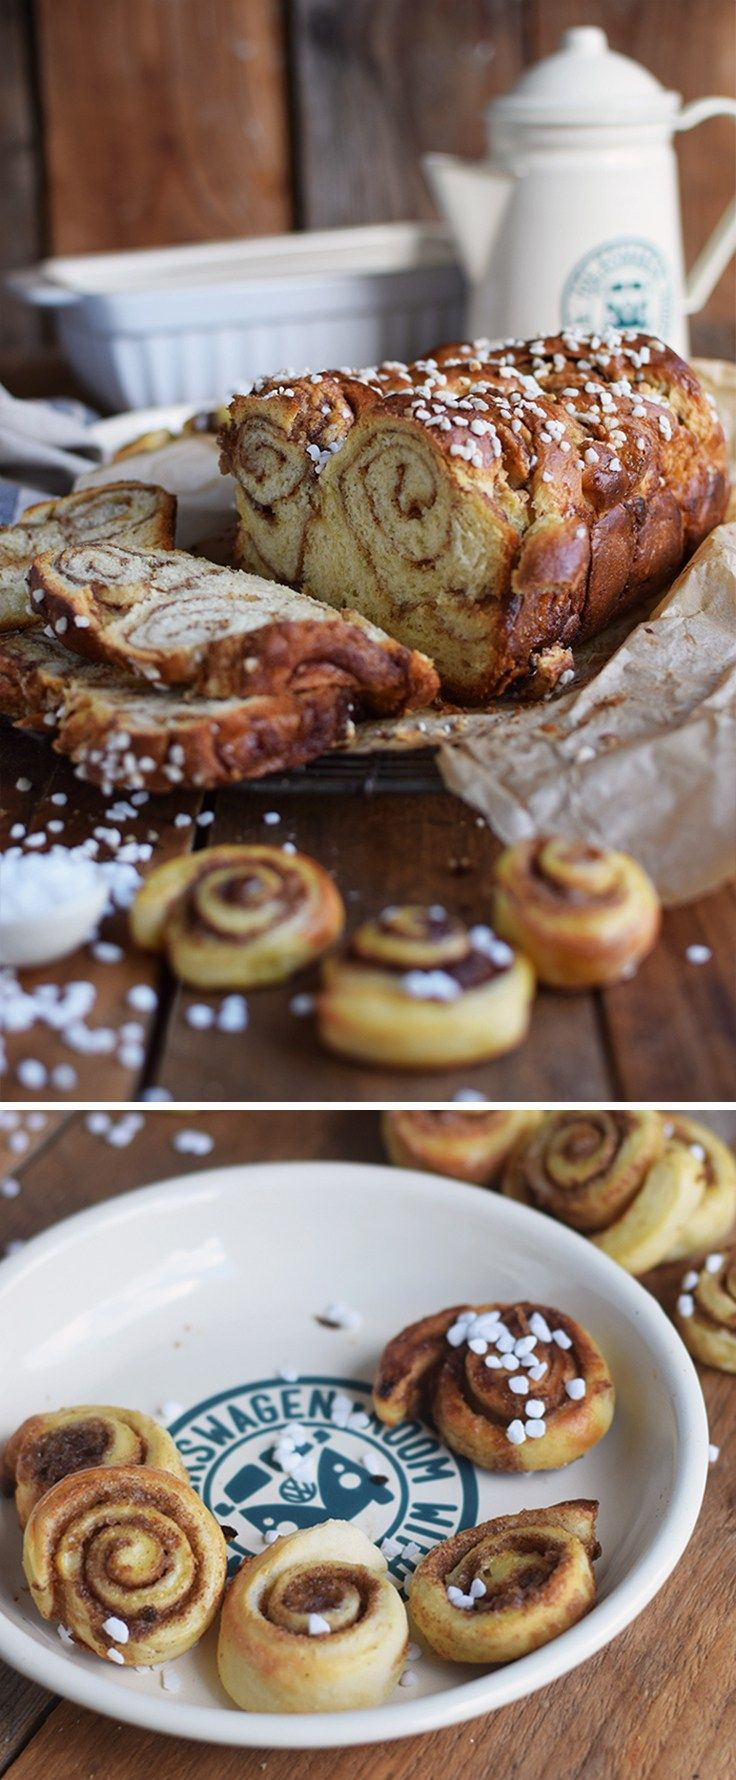 Zimtschnecken-Brot – Cinnamon Roll Bread: A fluffy and sweet cinnamon roll bread is a great snack to take on a road trip. Bake your cinnamon rolls into one big loaf full of great flavour. Do you want to see even more great road trip recipes? Well, just check out the great group board by Volkswagen which features ideas from several bloggers. Let's make sure our road trips are delicious. https://de.pinterest.com/volkswagen/food-bloggers-for-volkswagen/